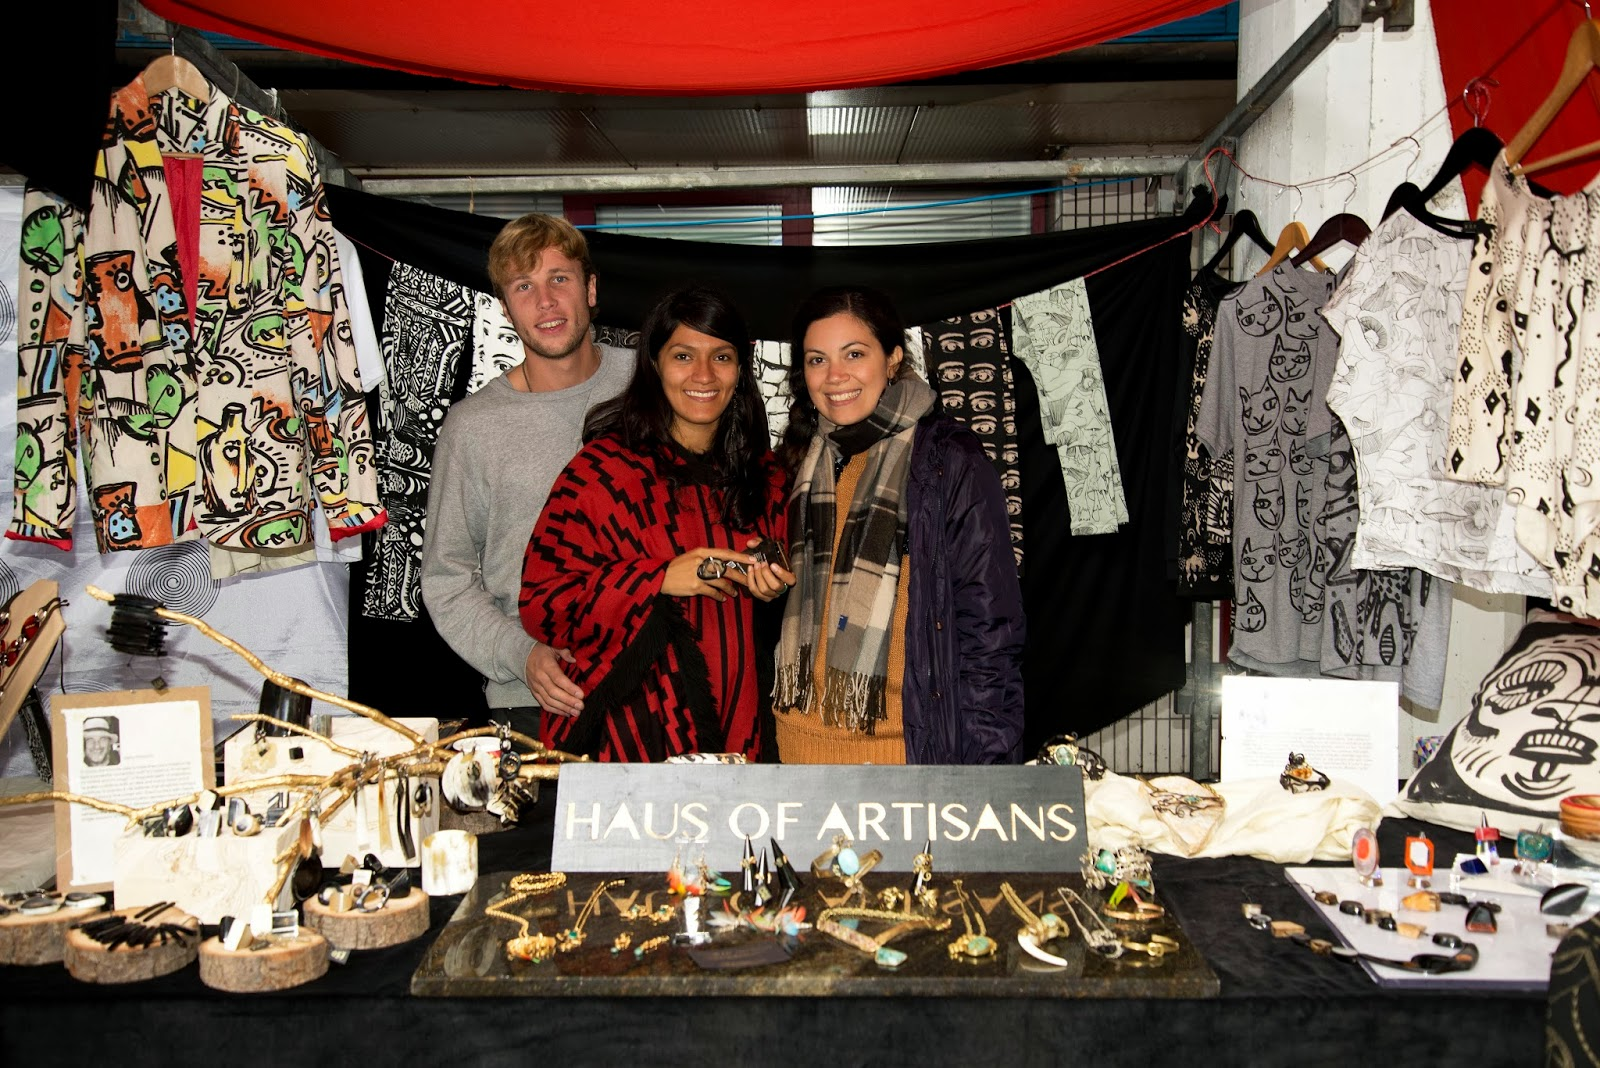 Haus of Artisans - I Love Makrets Pop-Up Portobello Rocks